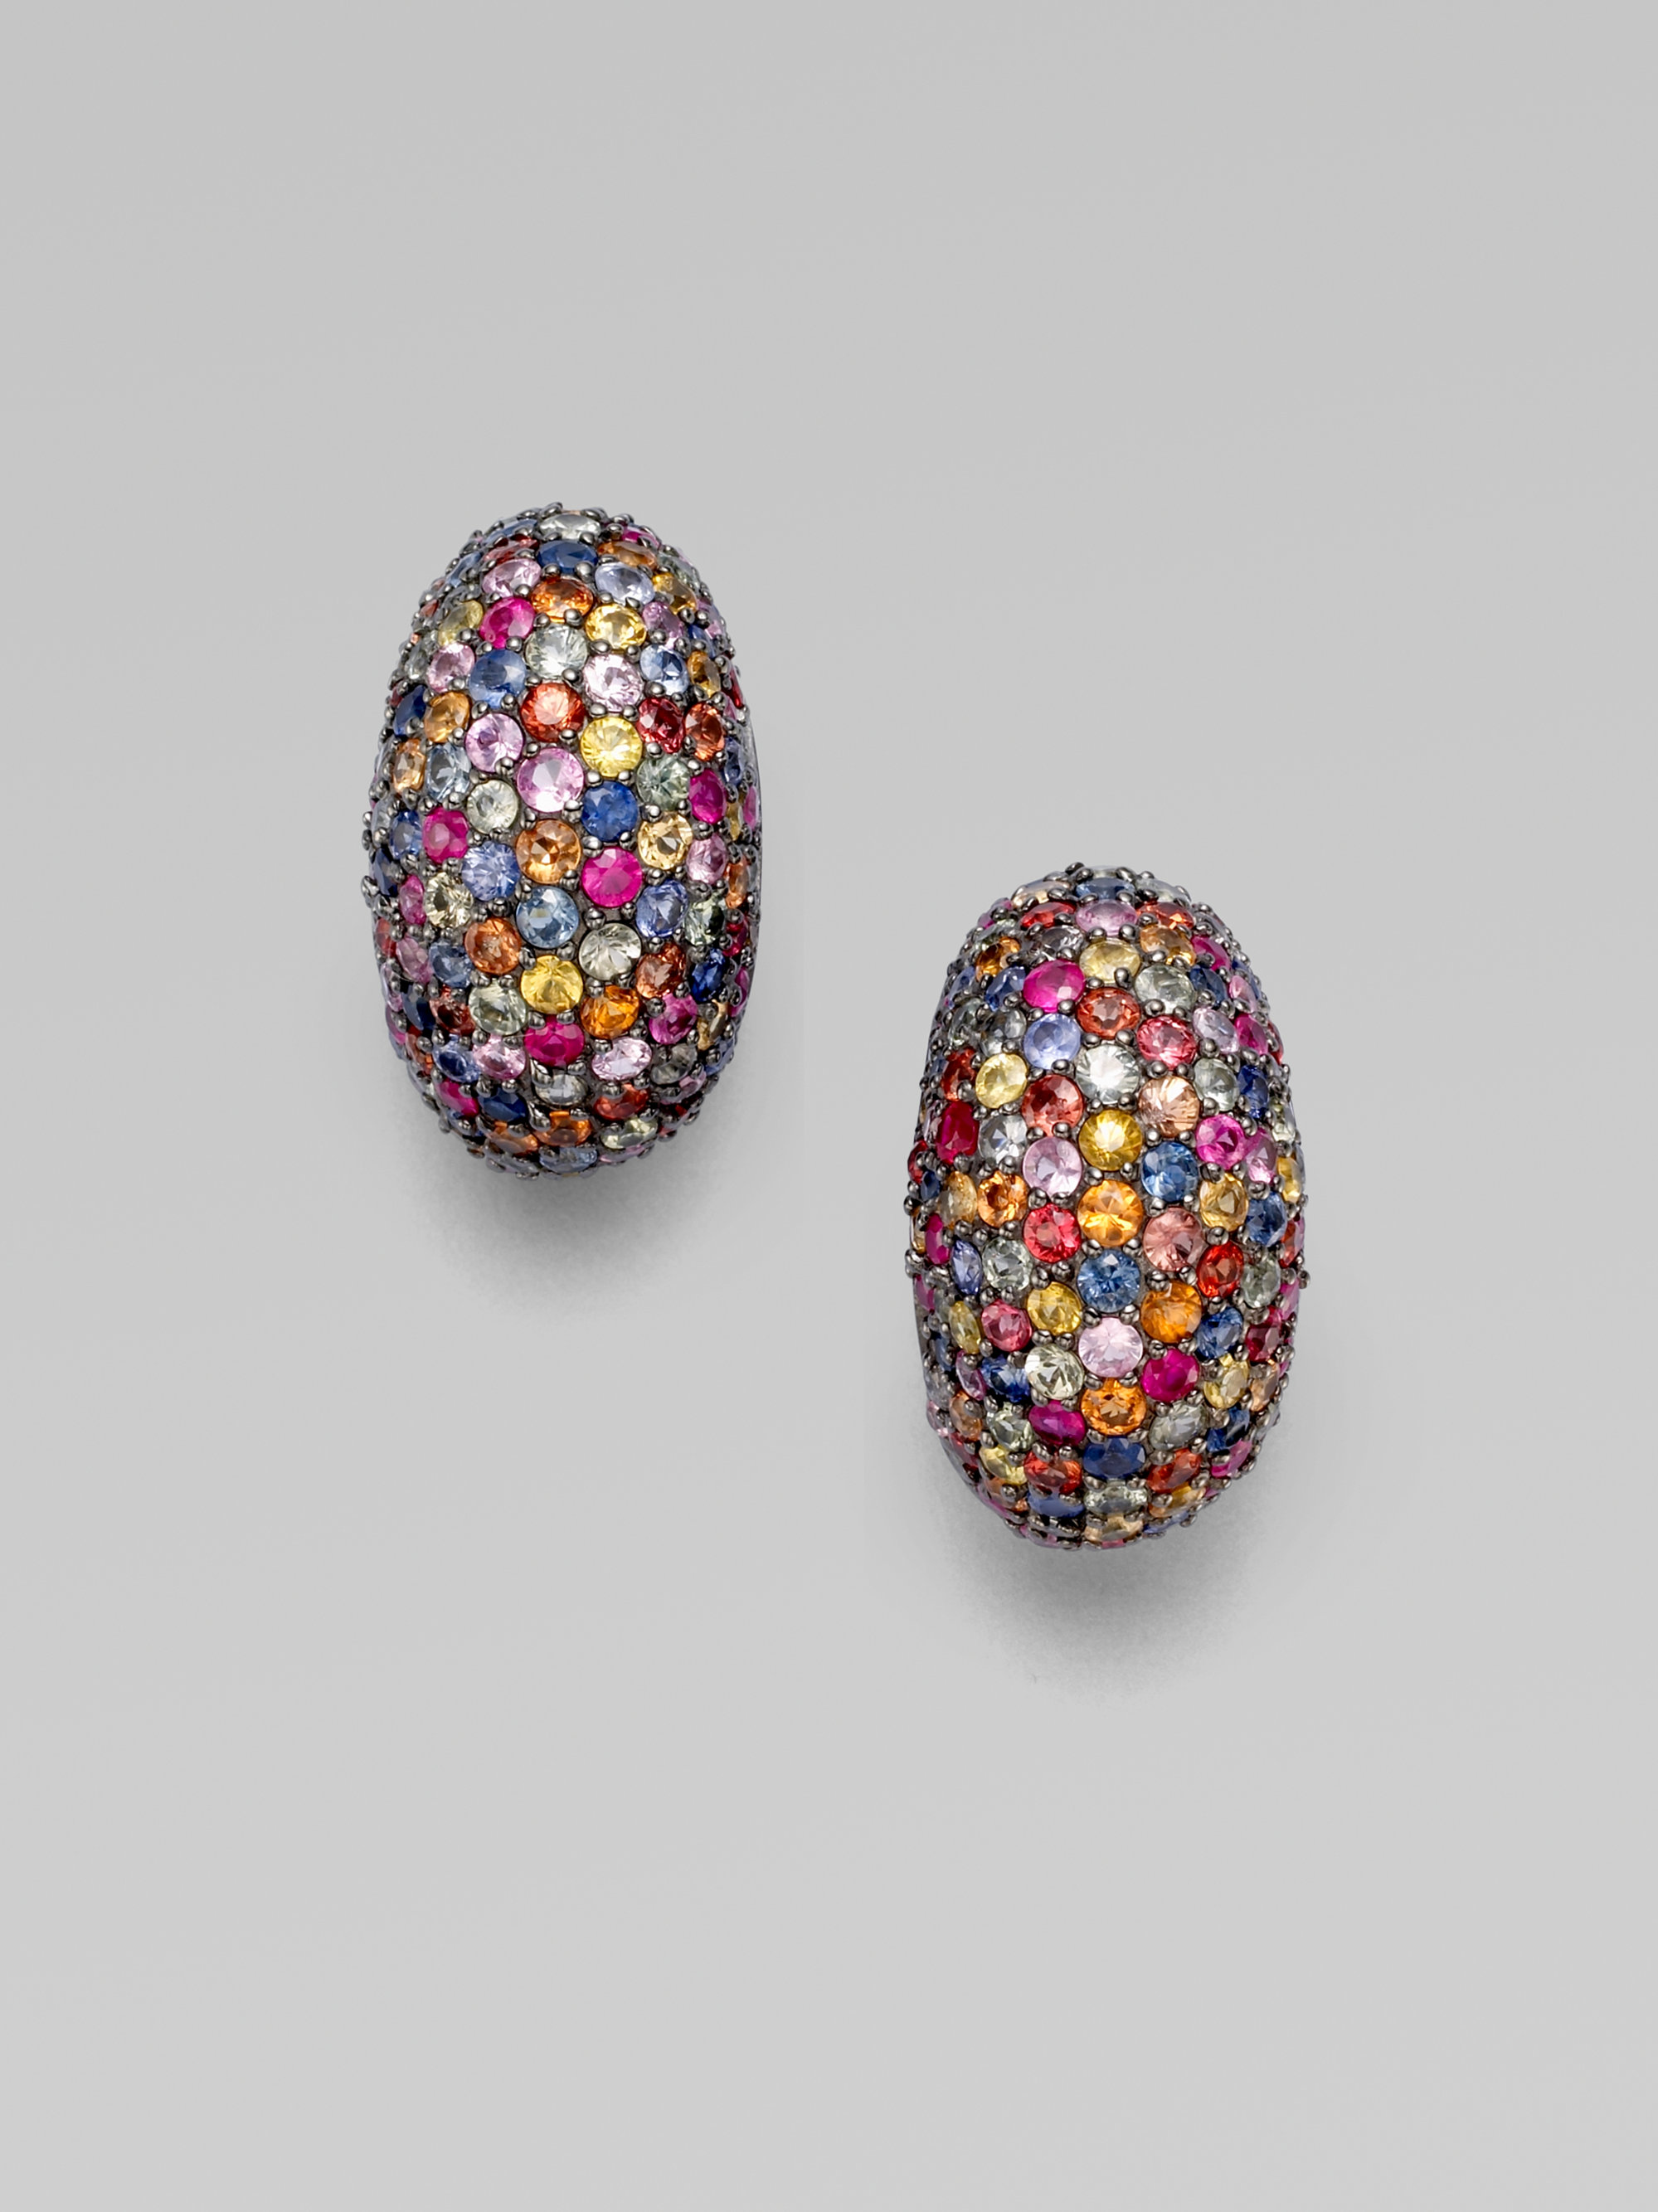 diamonds in and diamond various sepkus cut with sapphires by sapphire ring band sized work accented round blue purple alex pink multicolored hues open p